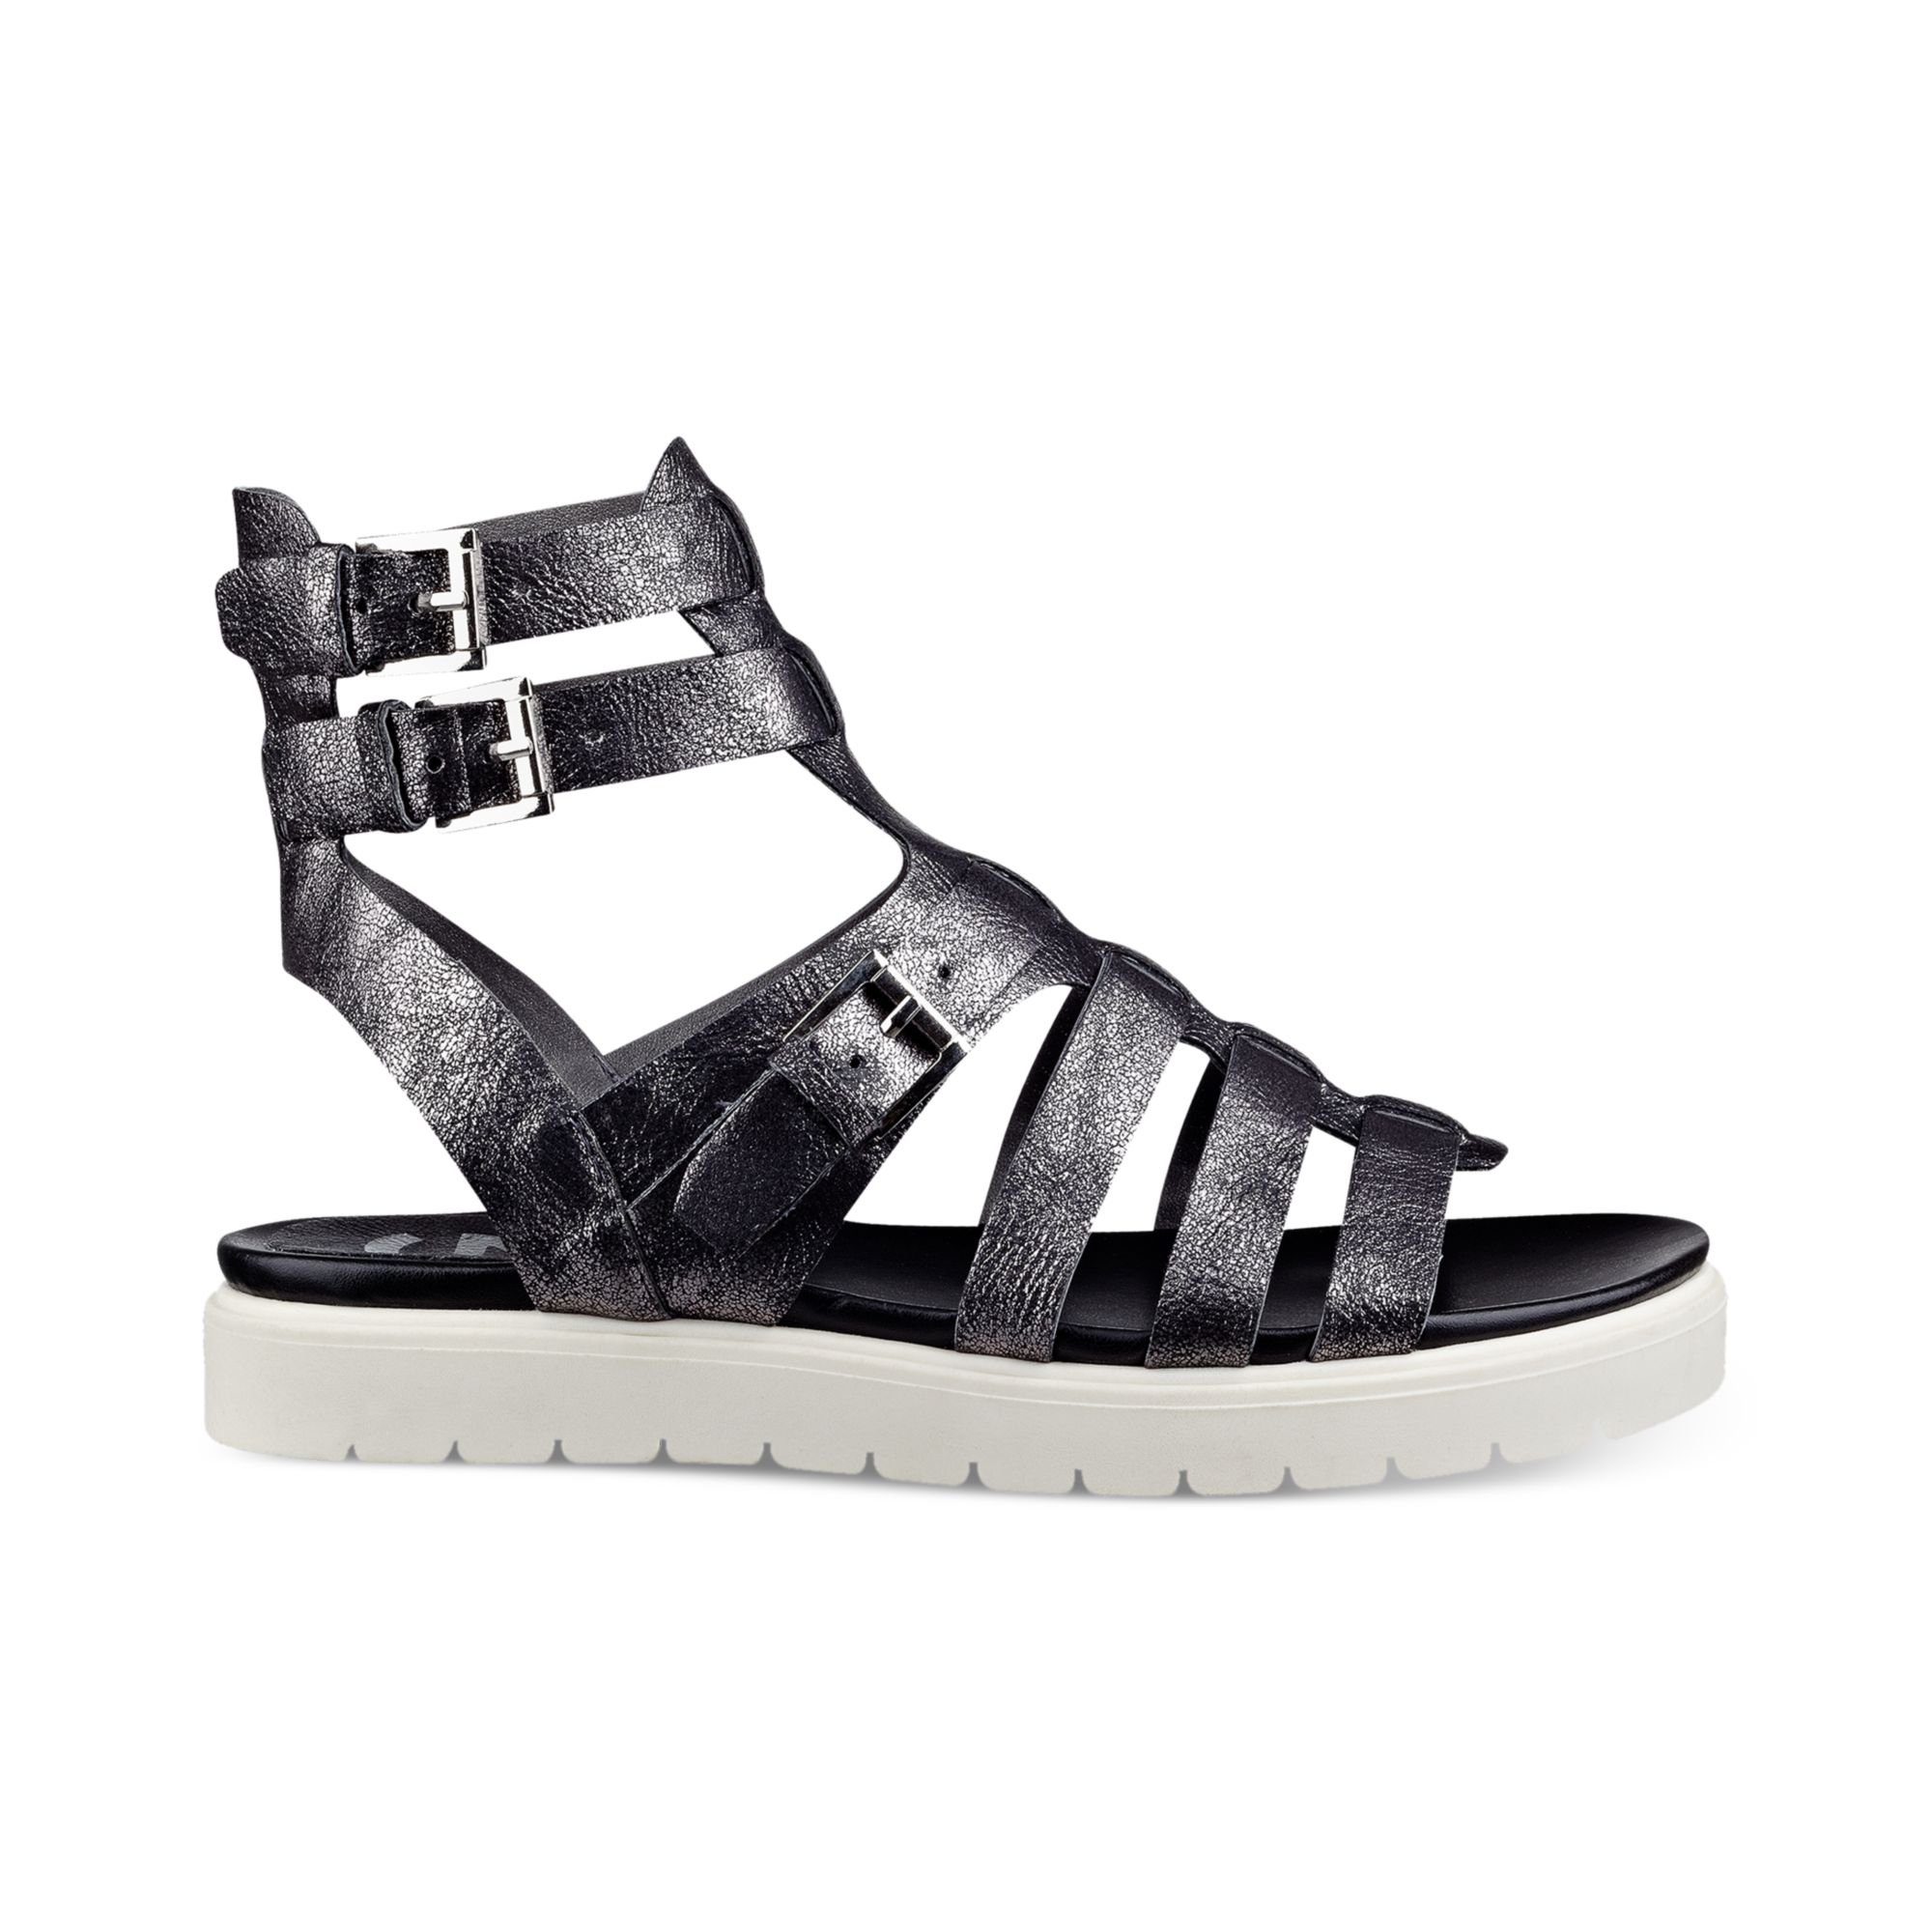 G by Guess Womens Mexico Flatform